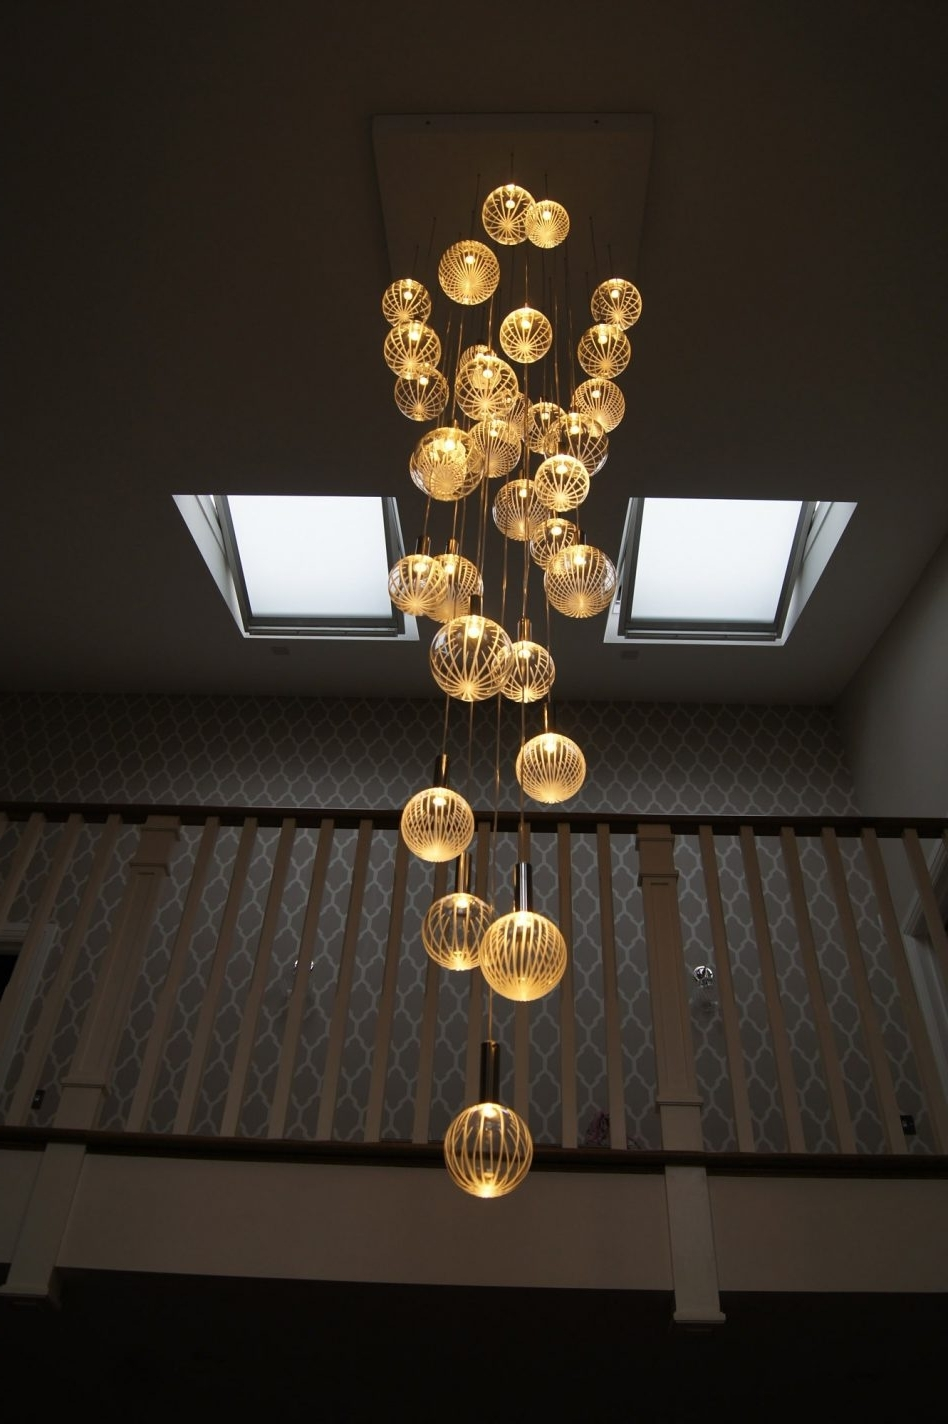 Current Branch Chandeliers Colored Chandelier Led Ceiling For  Large For Large Contemporary Chandeliers (View 13 of 15)